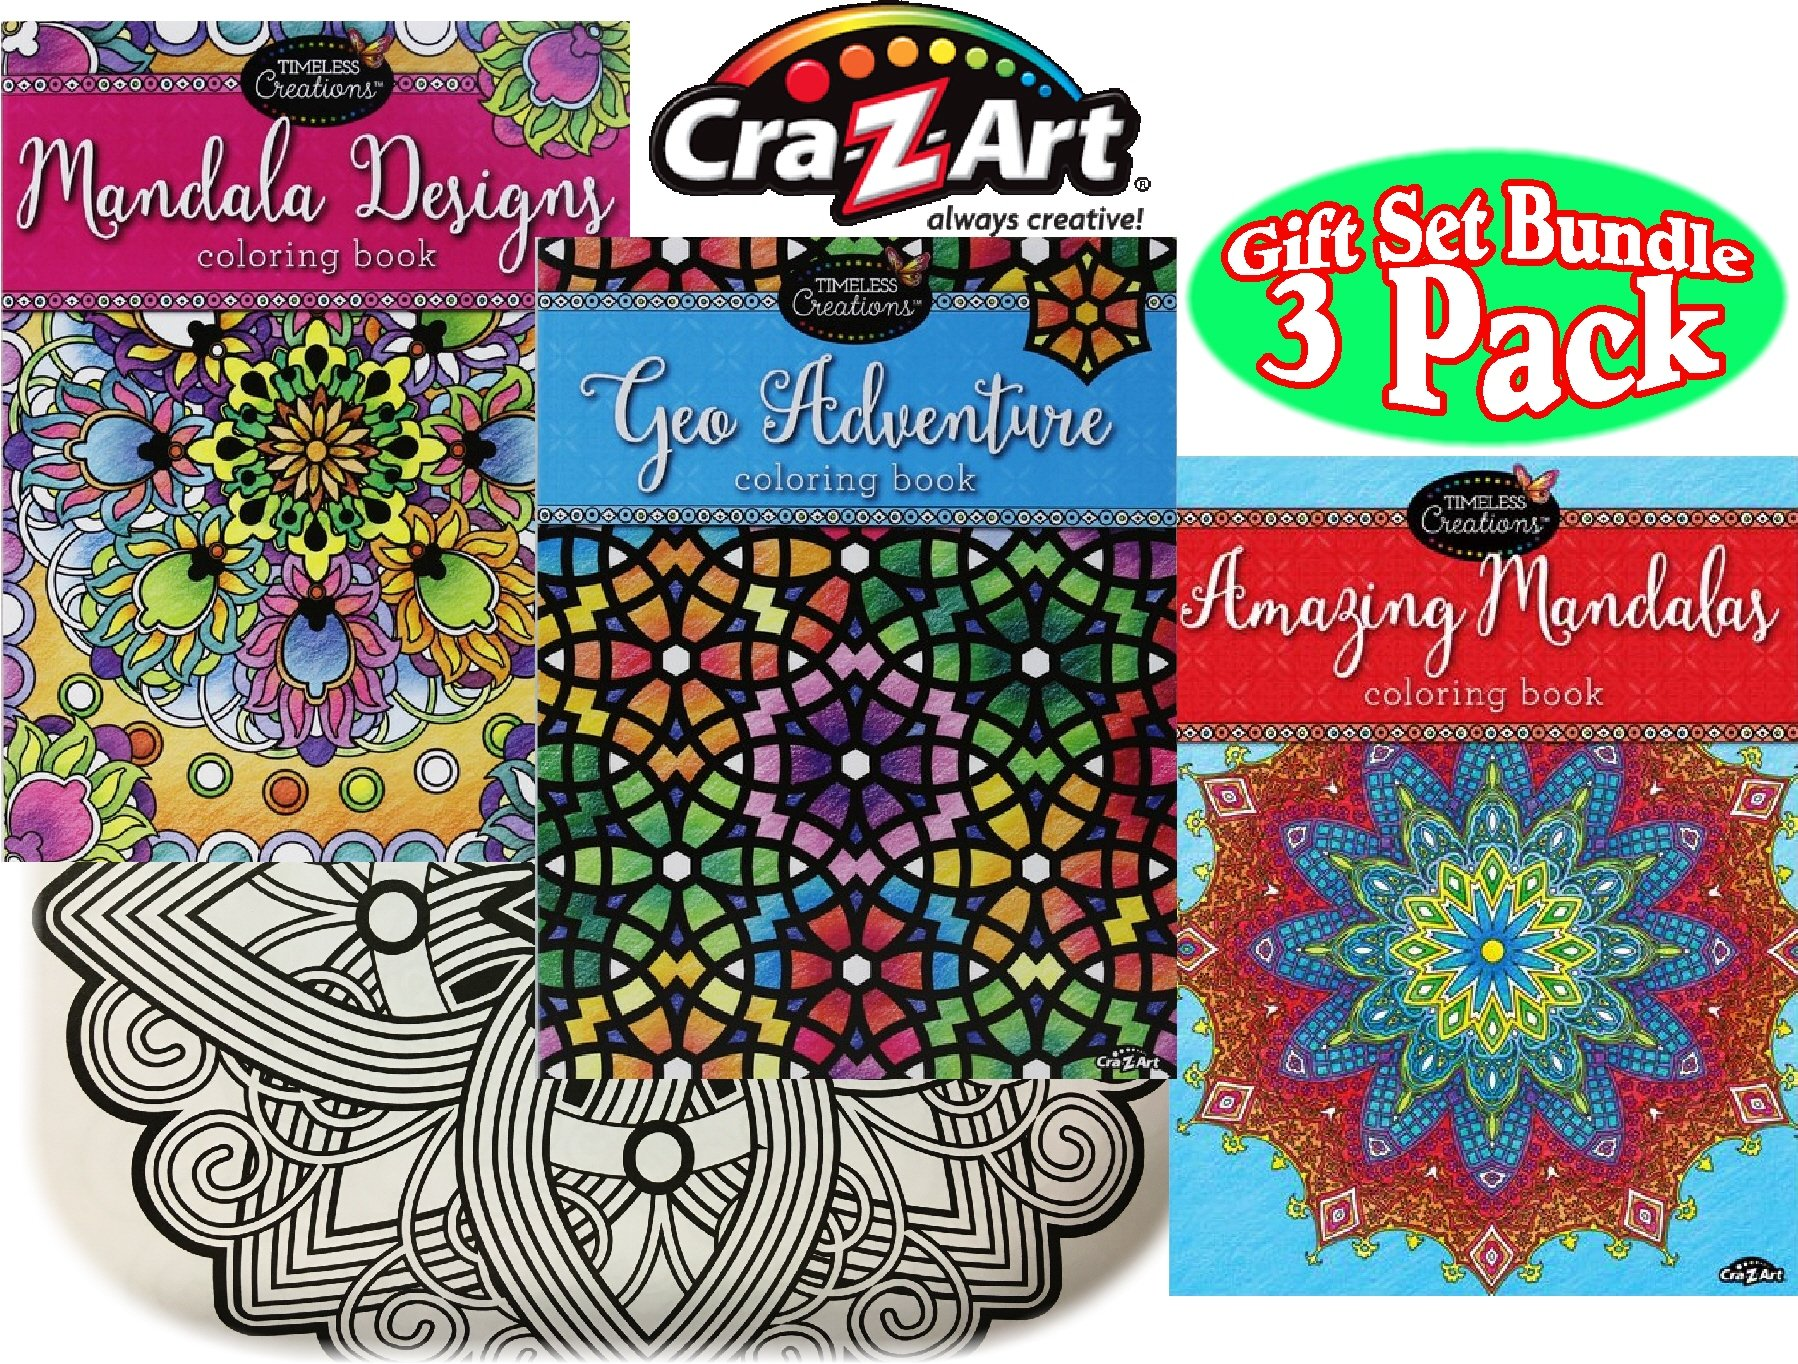 Timeless Collections Mandala Designs Geo Adventure Amazing Mandalas Premium 64 Page Adult Coloring Books Gift Set Bundle